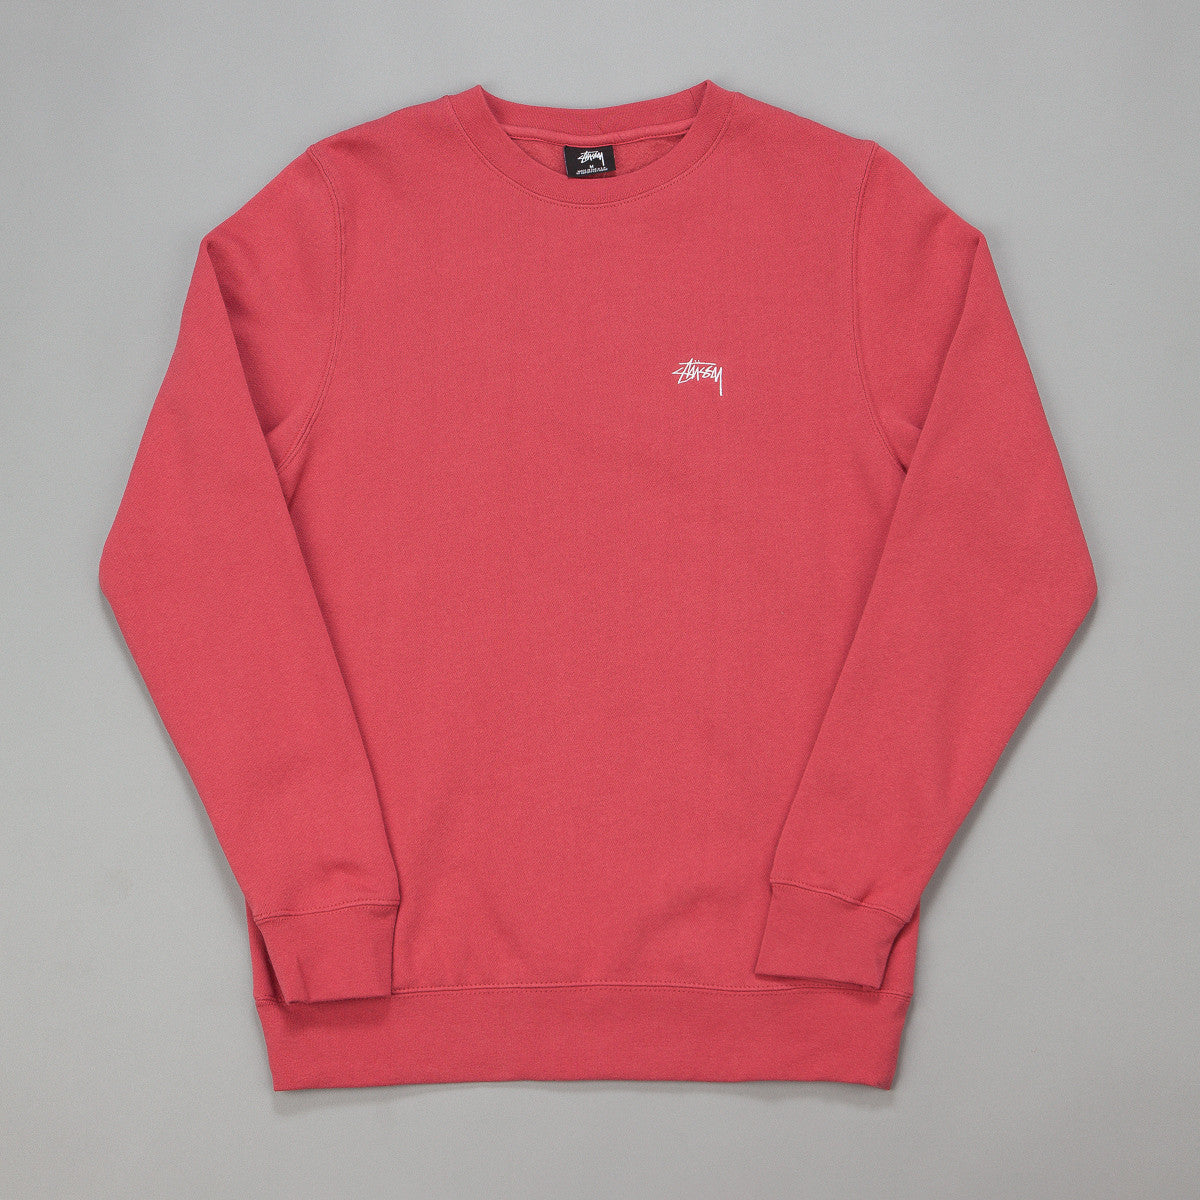 Stussy Back Arc Crewneck Sweatshirt